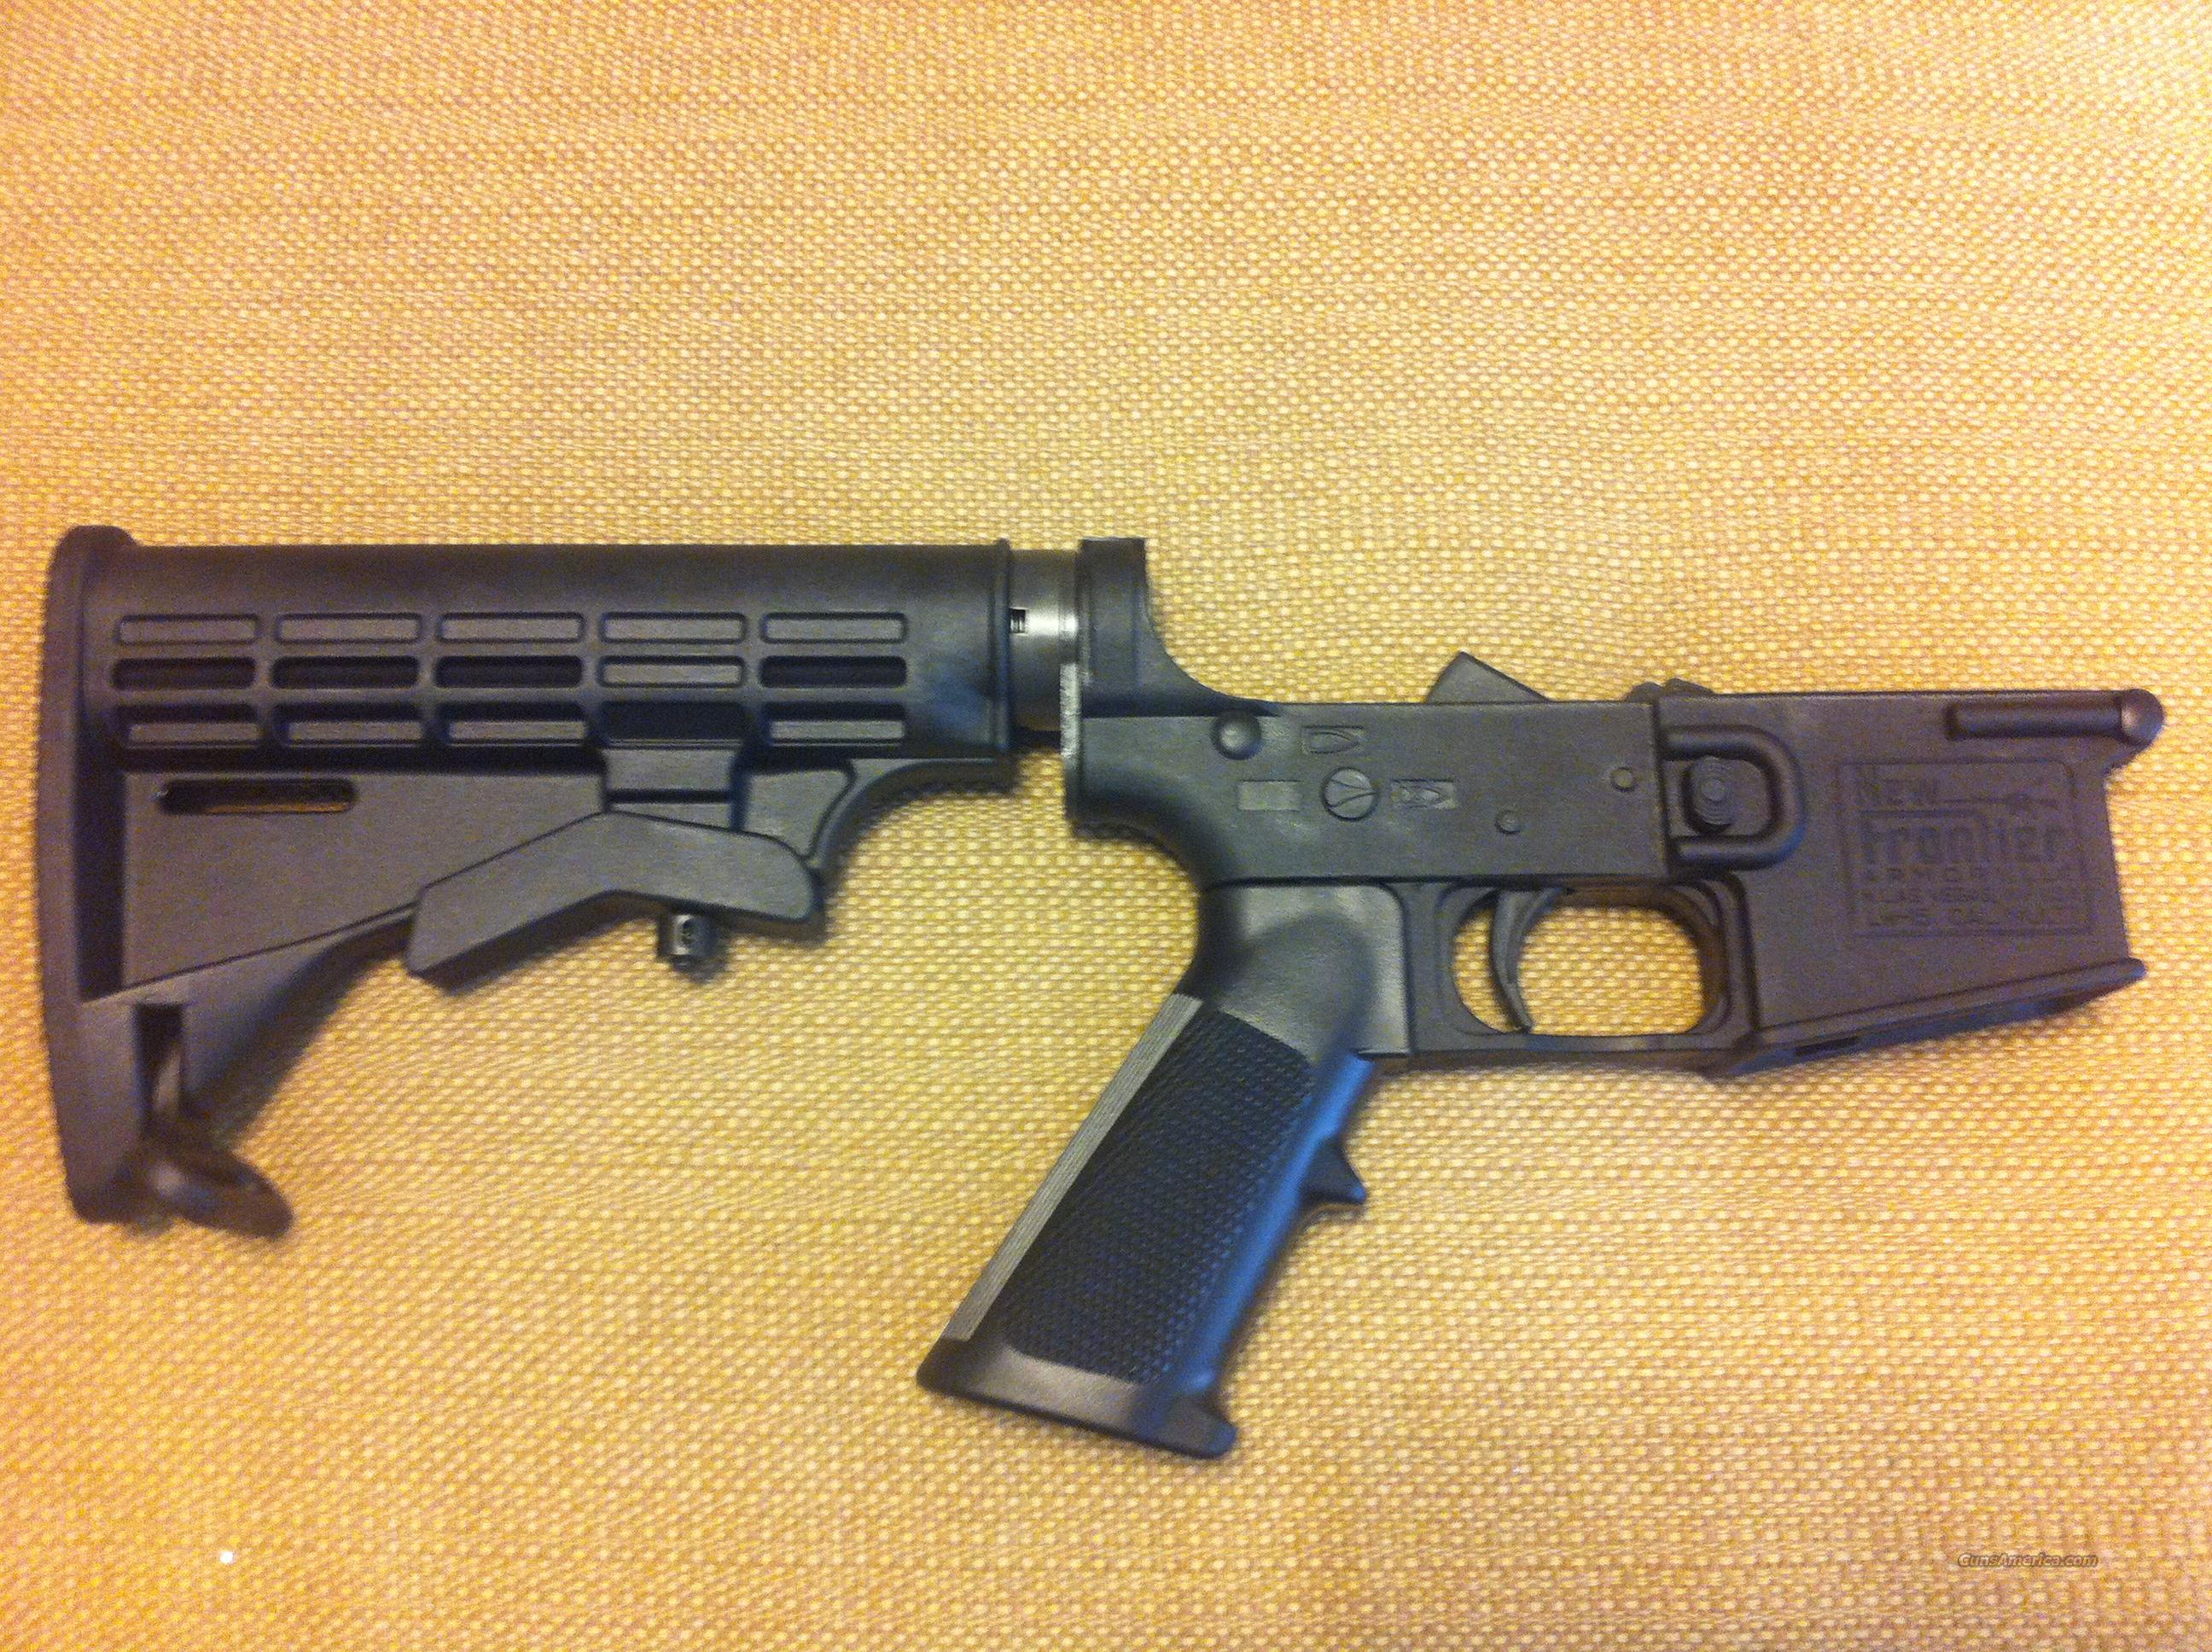 lNew Frontier Armory Model LW-15 Light weight polymer AR-15 Lower Multi Cal 5.56,223, 9mm, Just add an upper   Guns > Rifles > Colt Military/Tactical Rifles